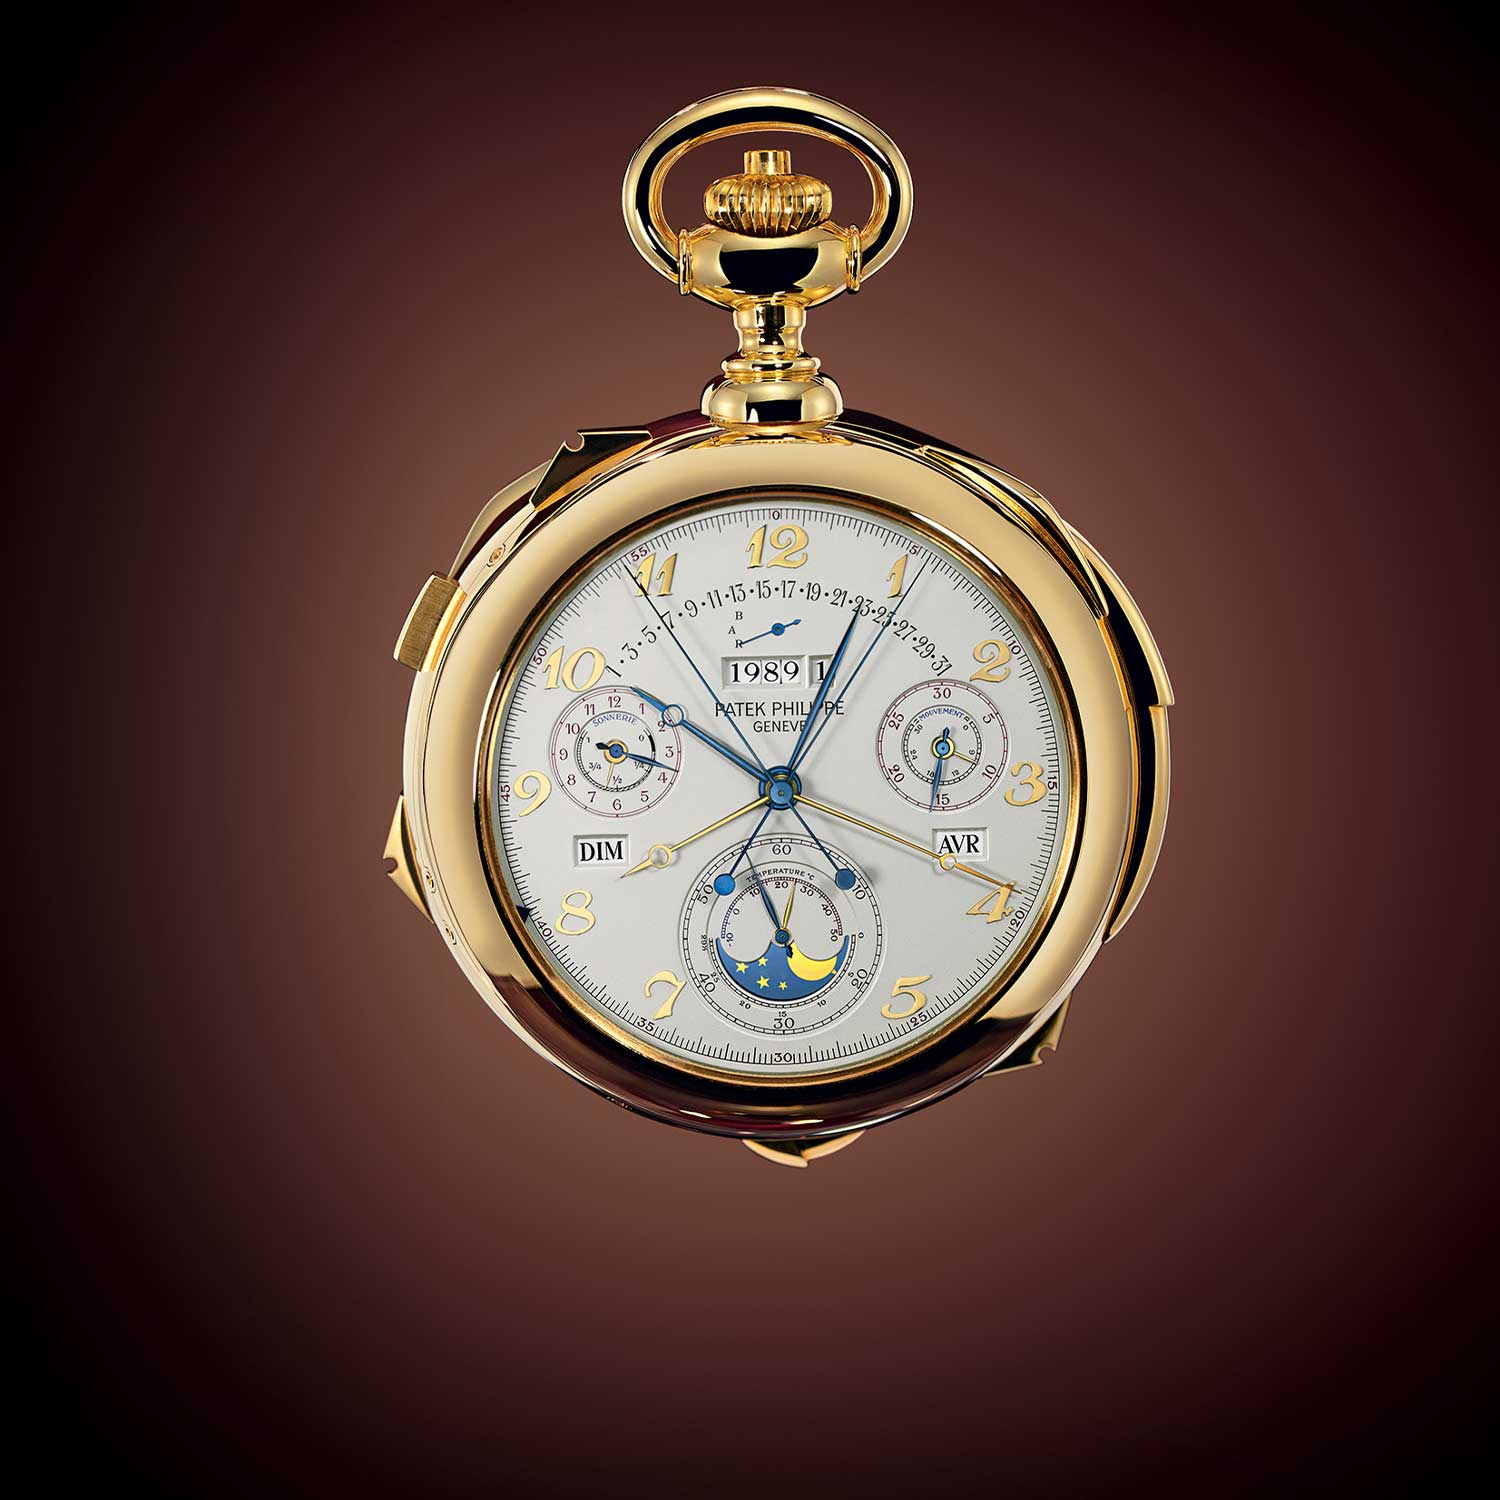 The incredible Calibre 89 pocket watch presented by Patek Philippe in 1989 on the occasion of its 150th anniversary